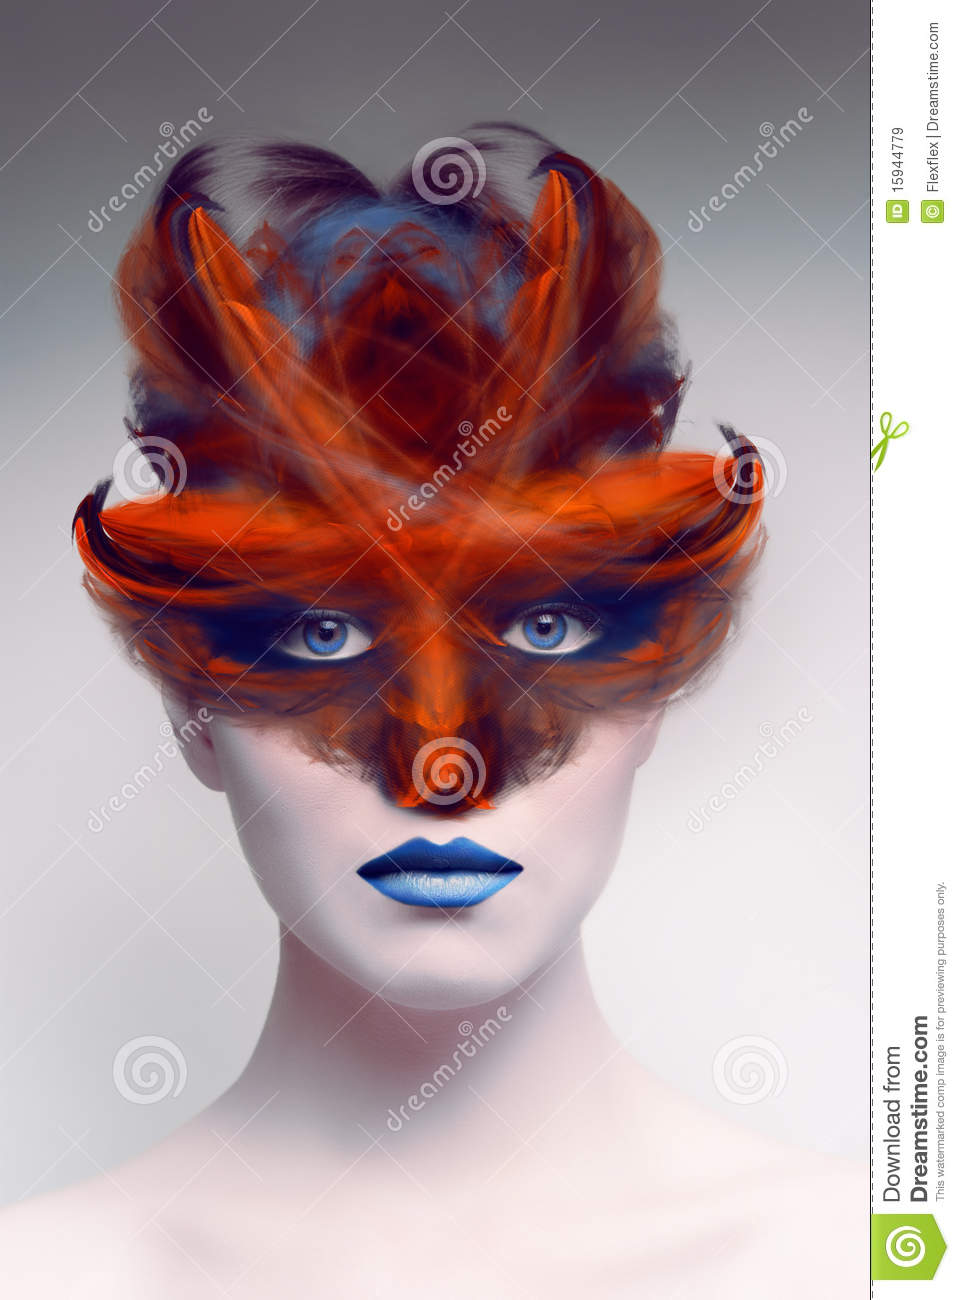 women art mask - photo #25